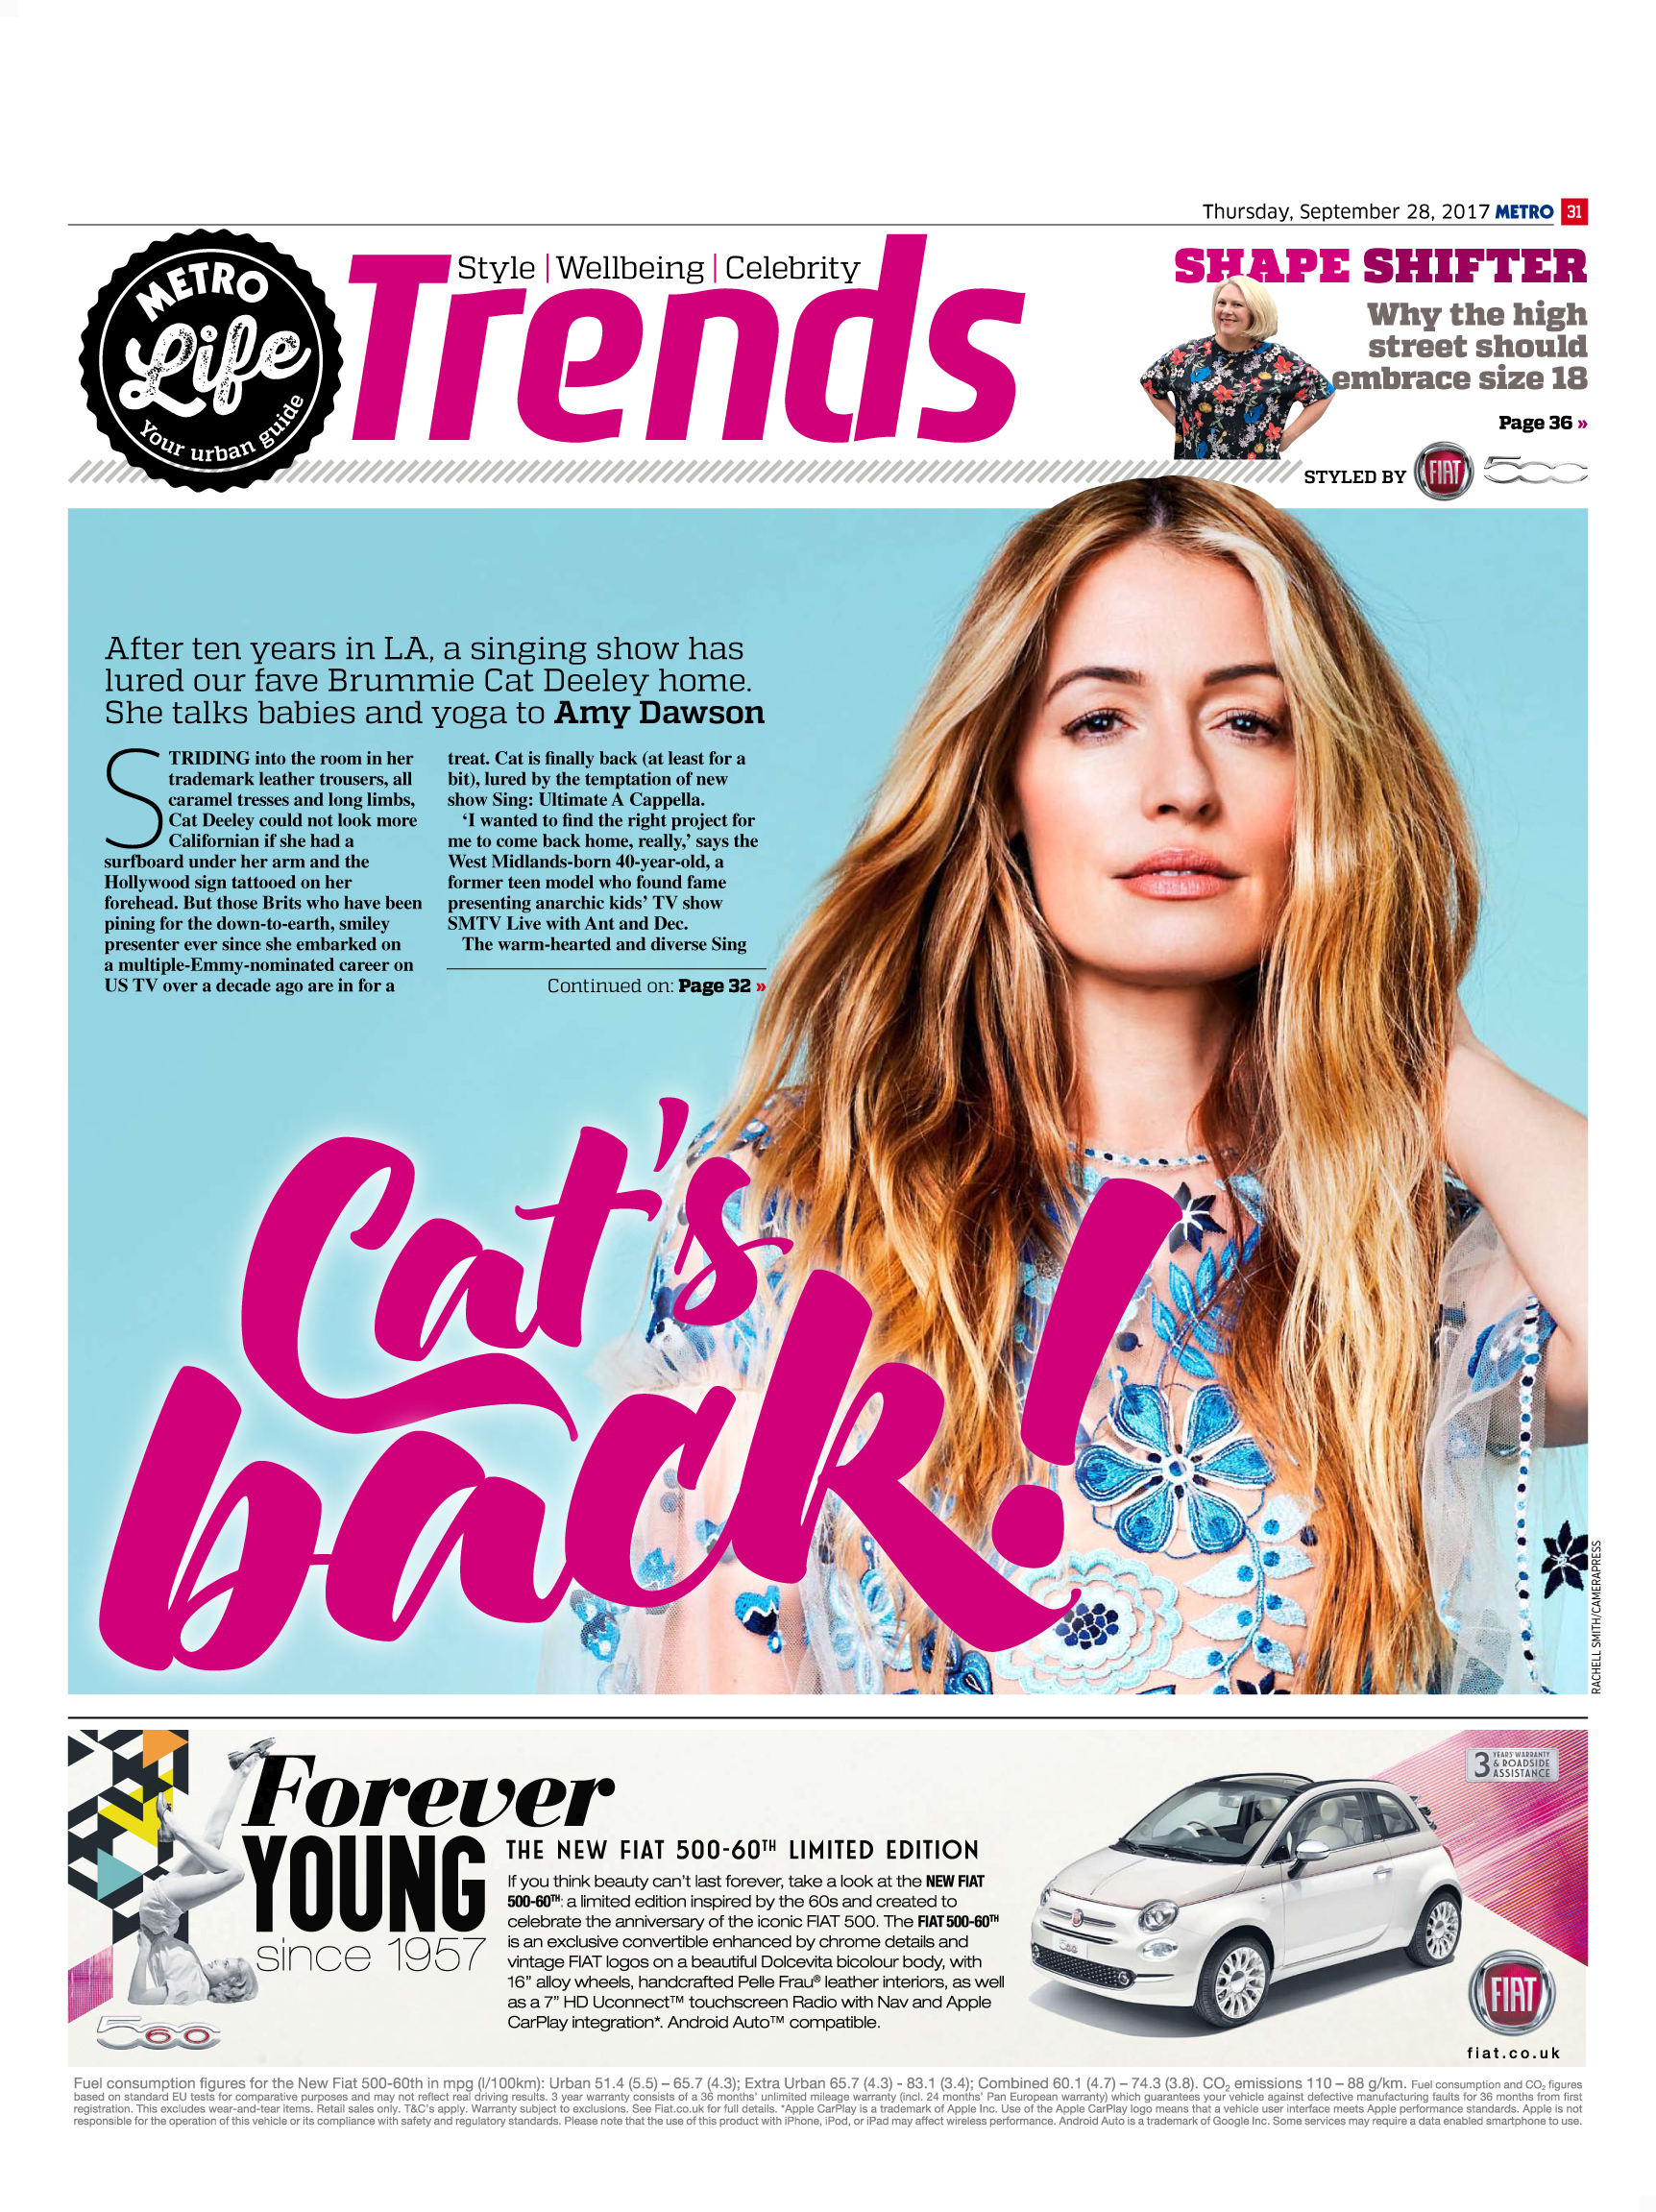 Cat's Back: An interview with Cat Deeley (Metro, 28th Sep 2017)